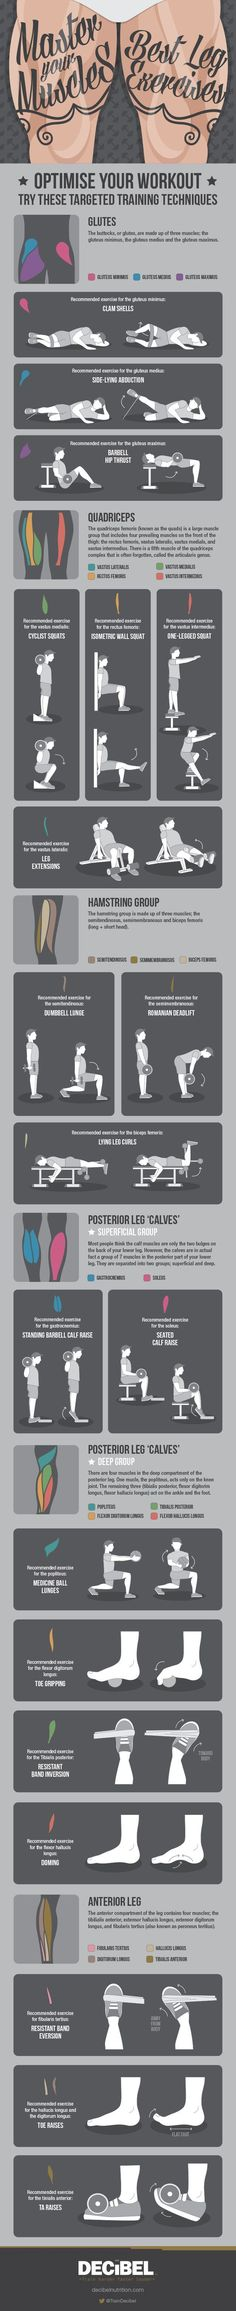 The best exercises to get your legs ready for summer!